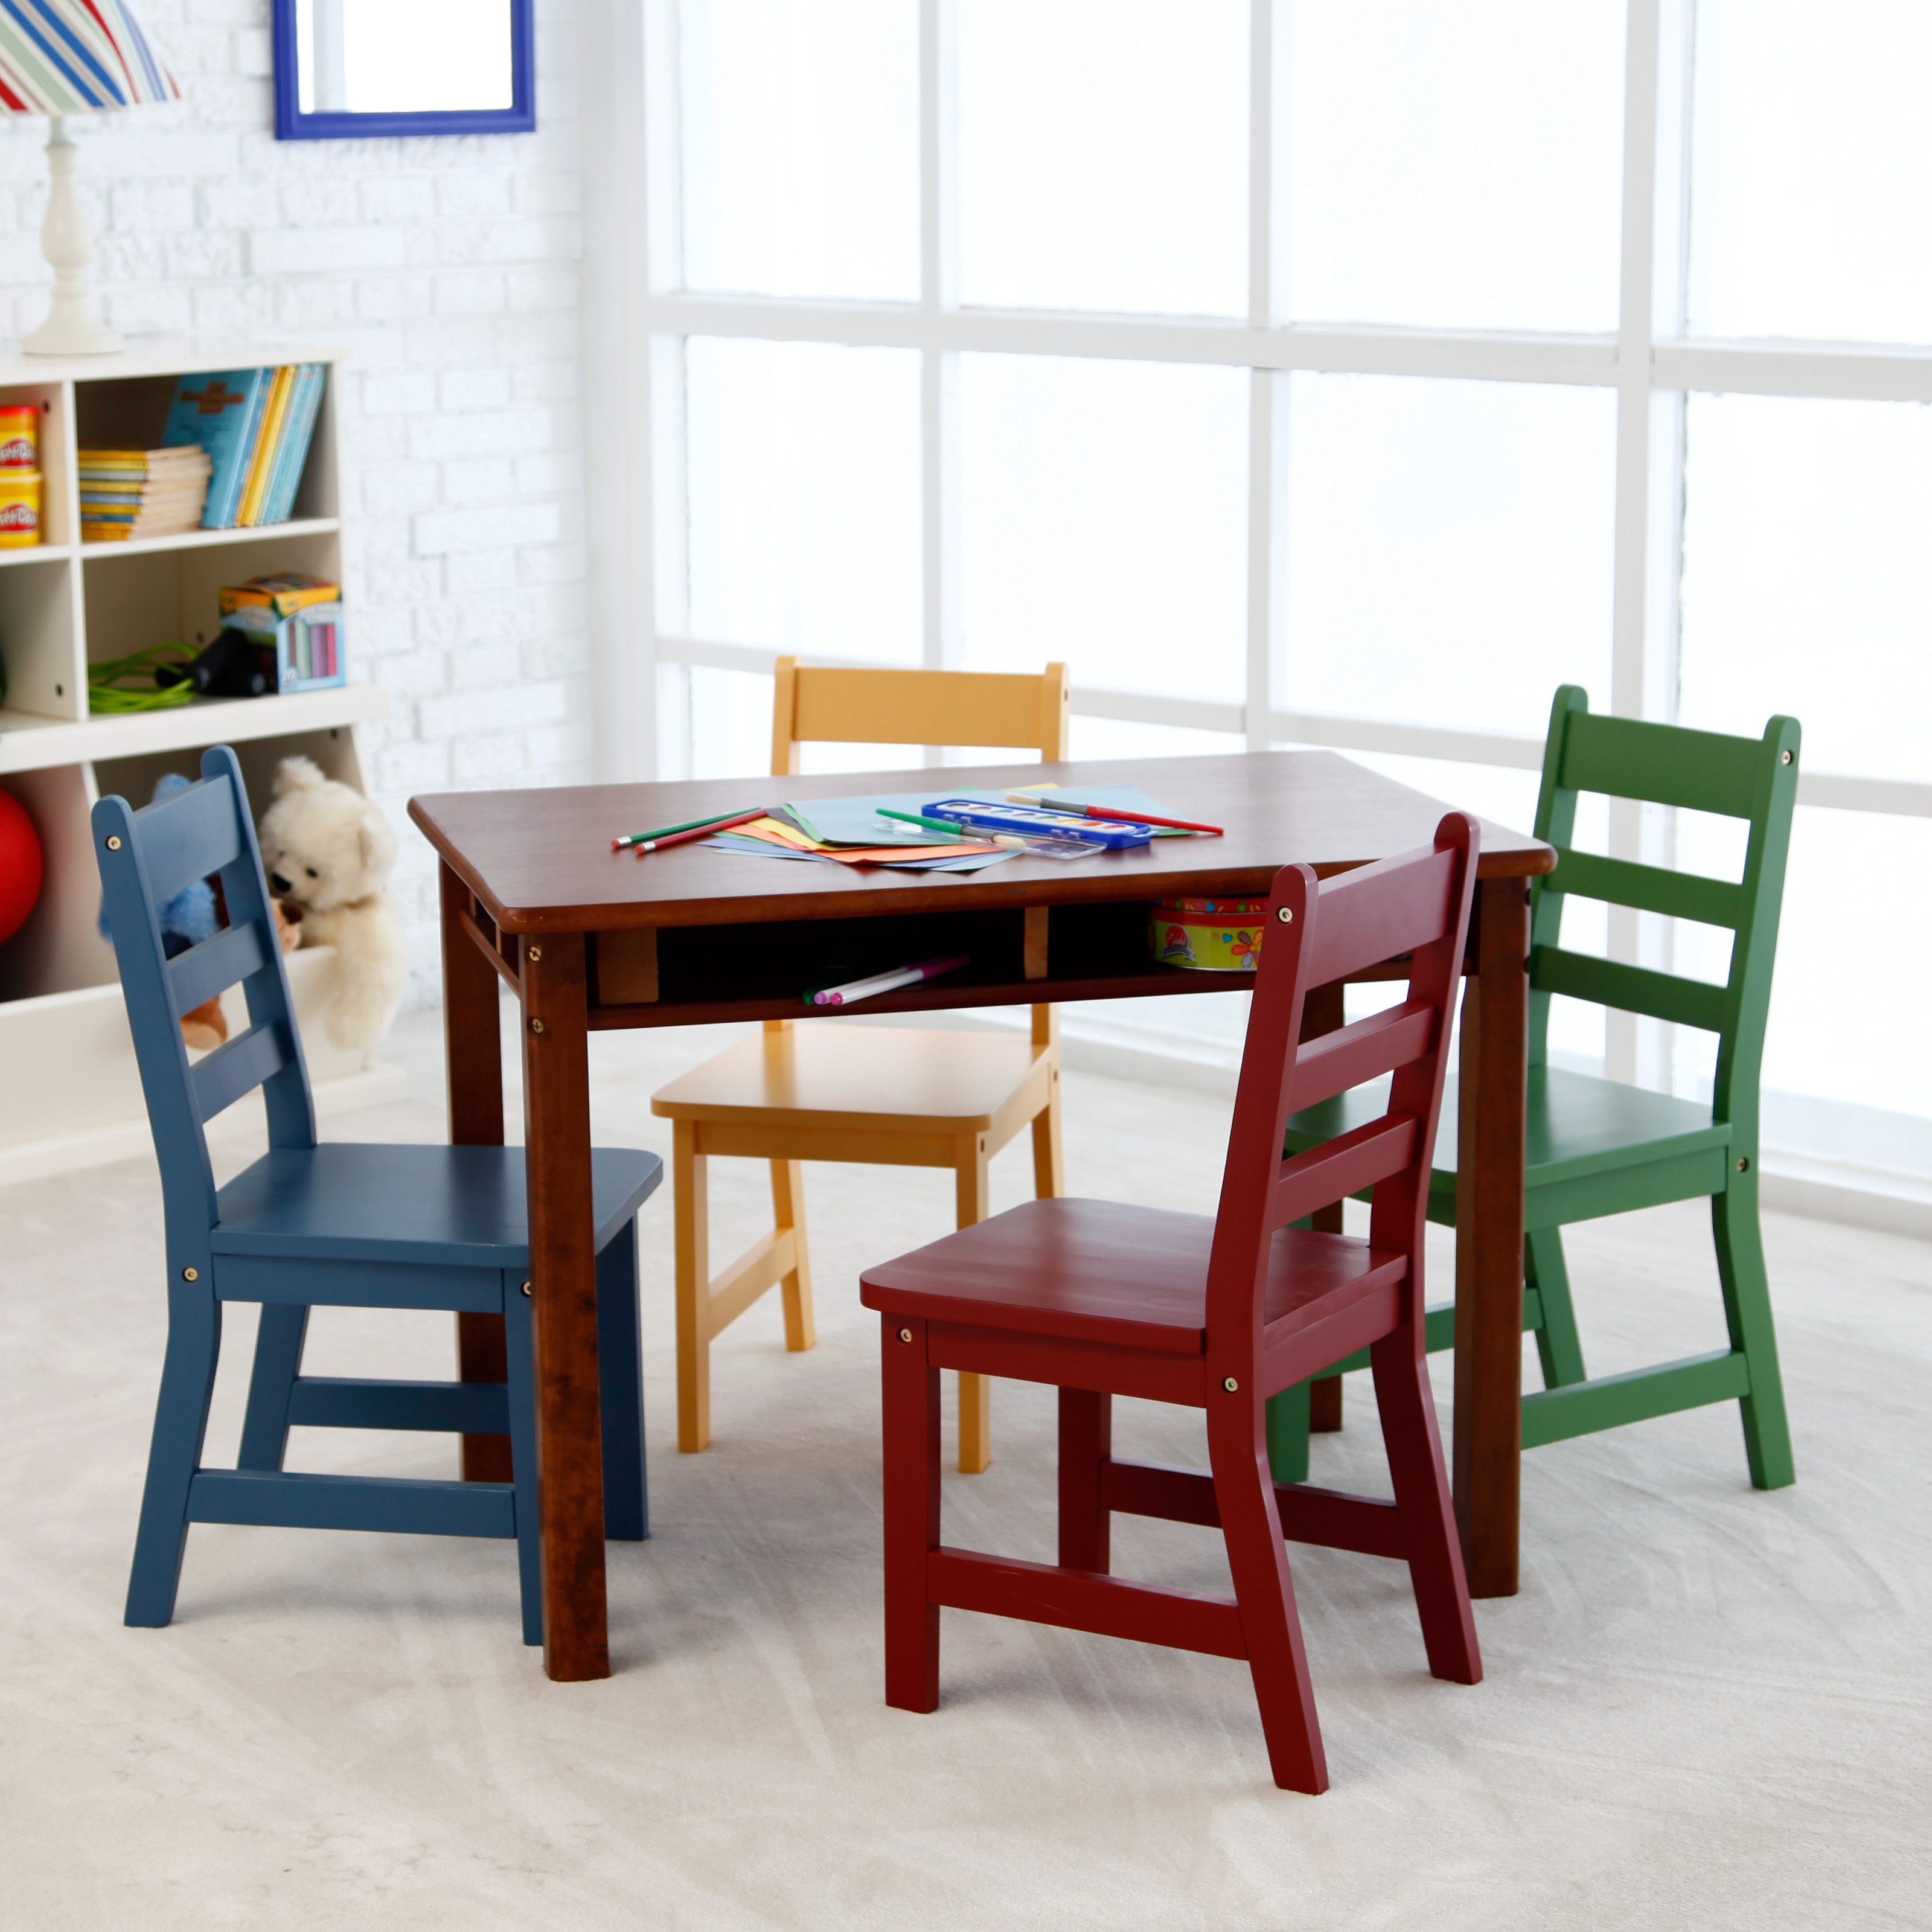 Kids table and chairs: ideal gift for your child